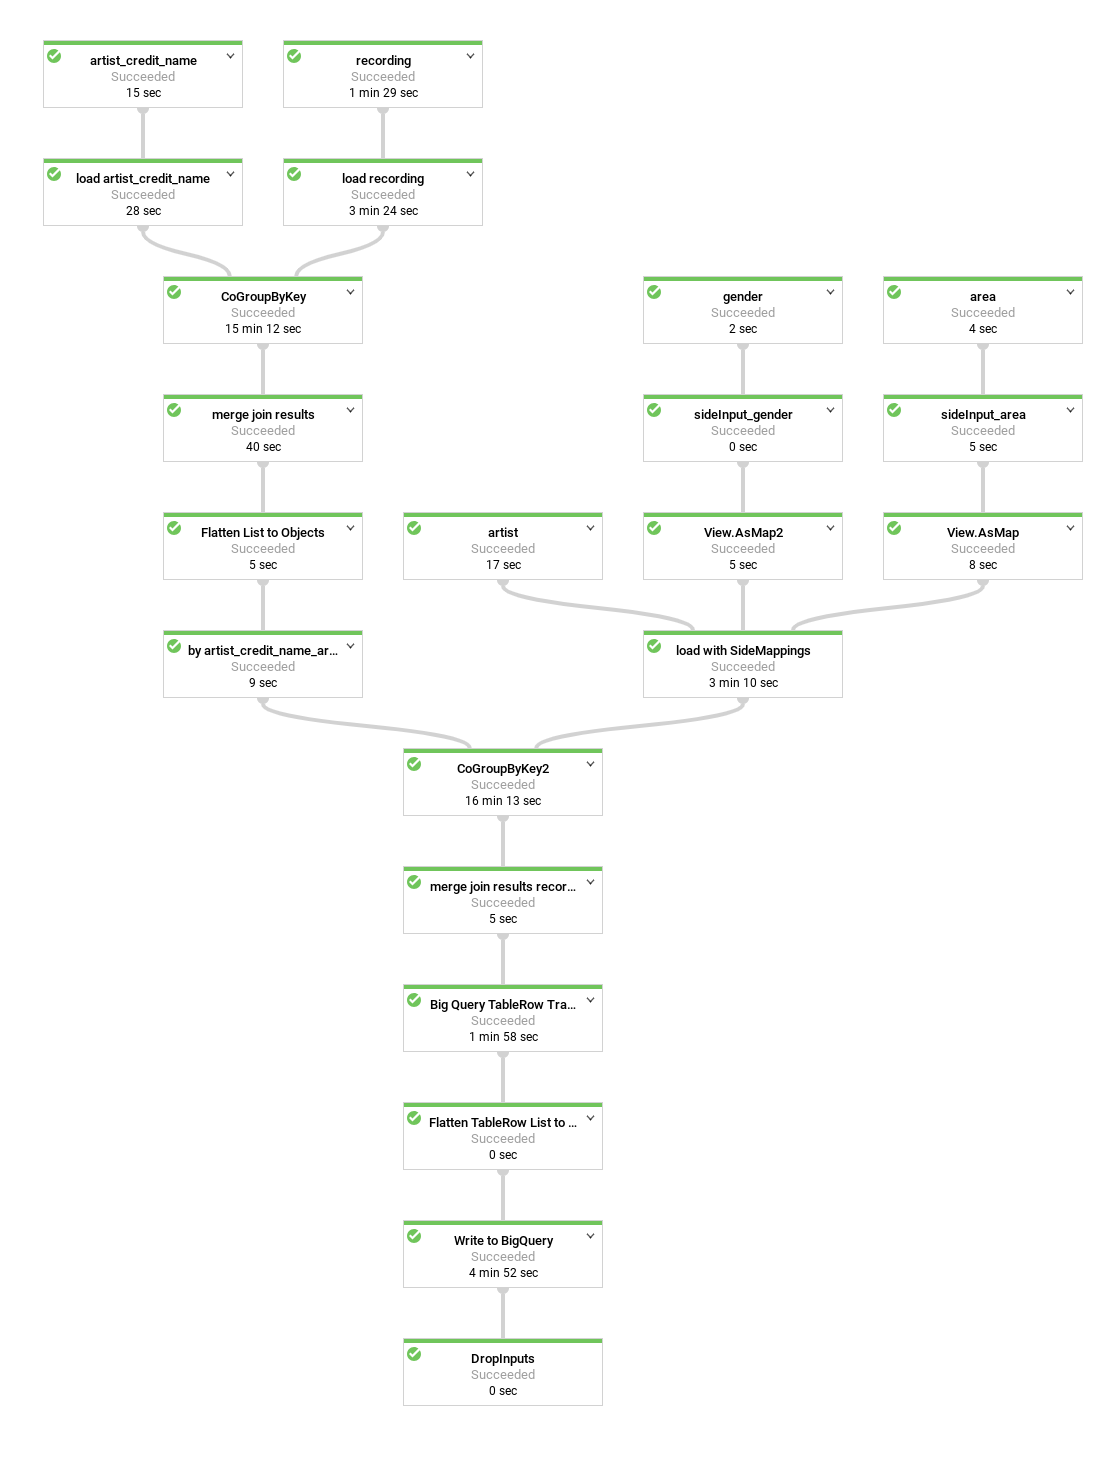 Optimized pipeline with sources, transformations, and sinks.